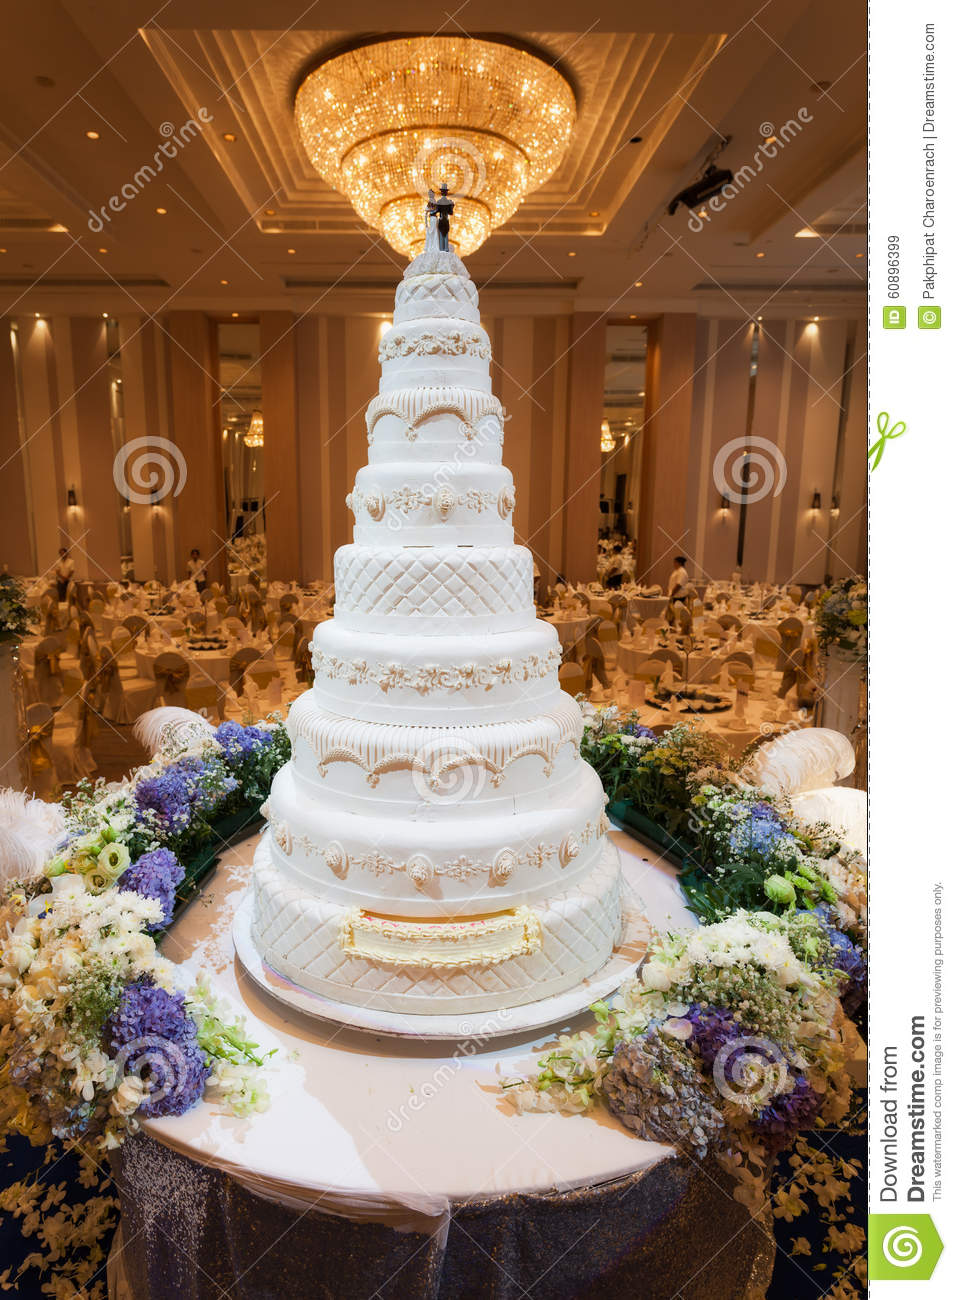 Flowers And Decorations Around Wedding Cake With Chandelier On C – Cake Chandelier